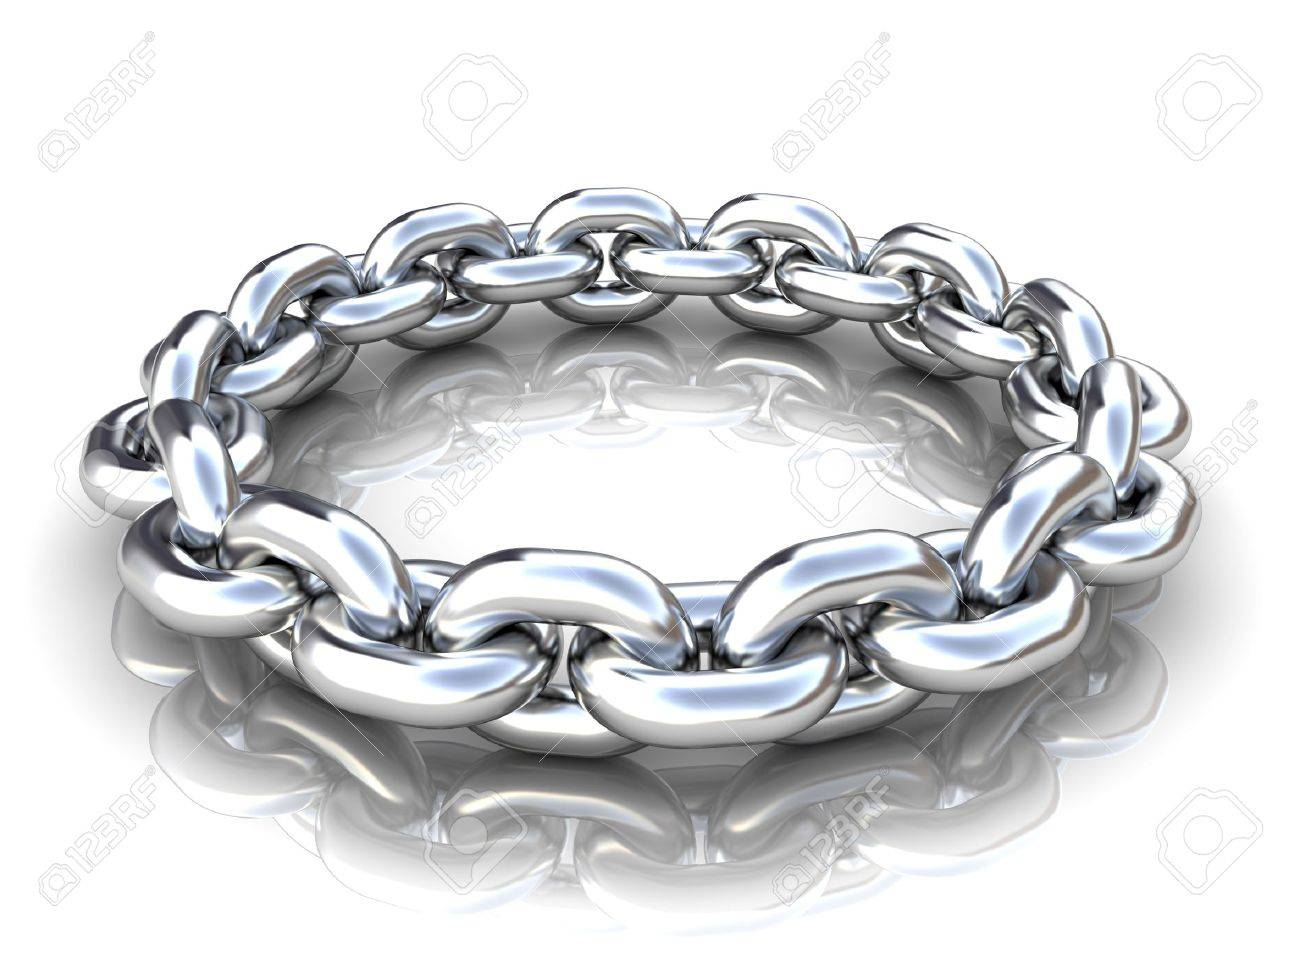 3d illustration of metal chain circle over white background Stock Illustration - 6401835